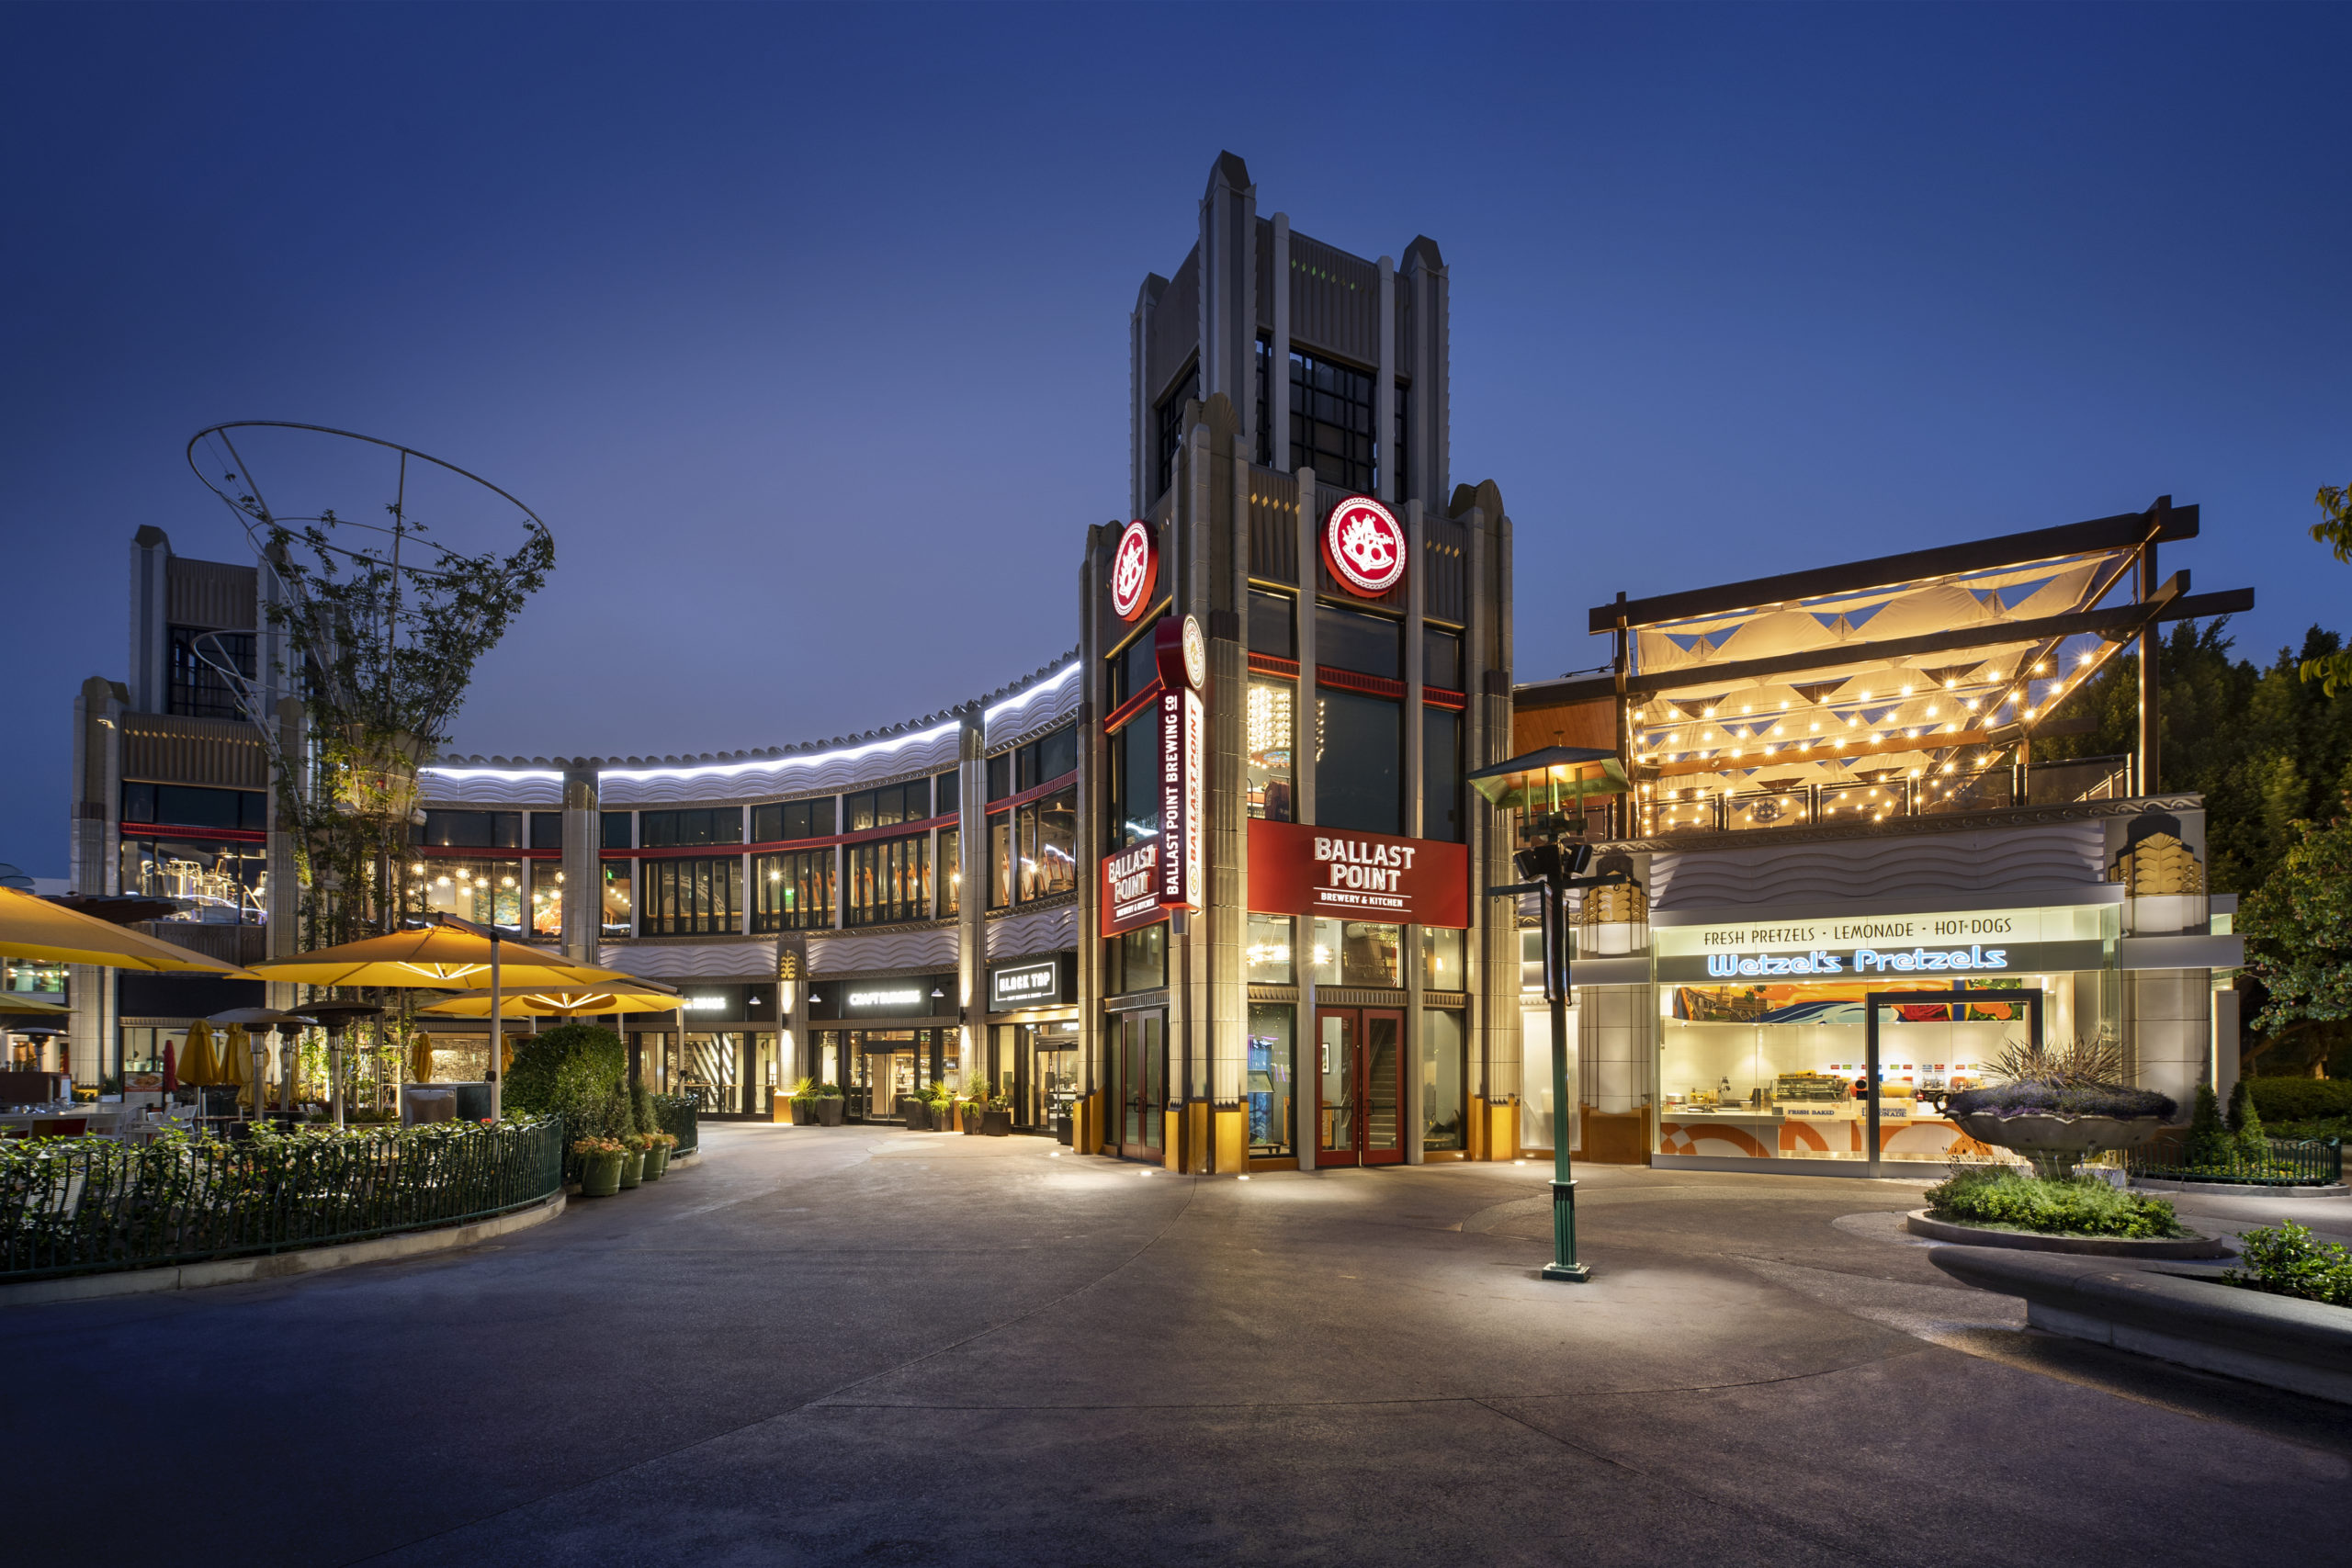 Downtown Disney District at the Disneyland Resort is a fresh, one-of-a-kind Disney experience, immersing guests by day and night in an exciting mix of family-friendly dining, shopping and more.